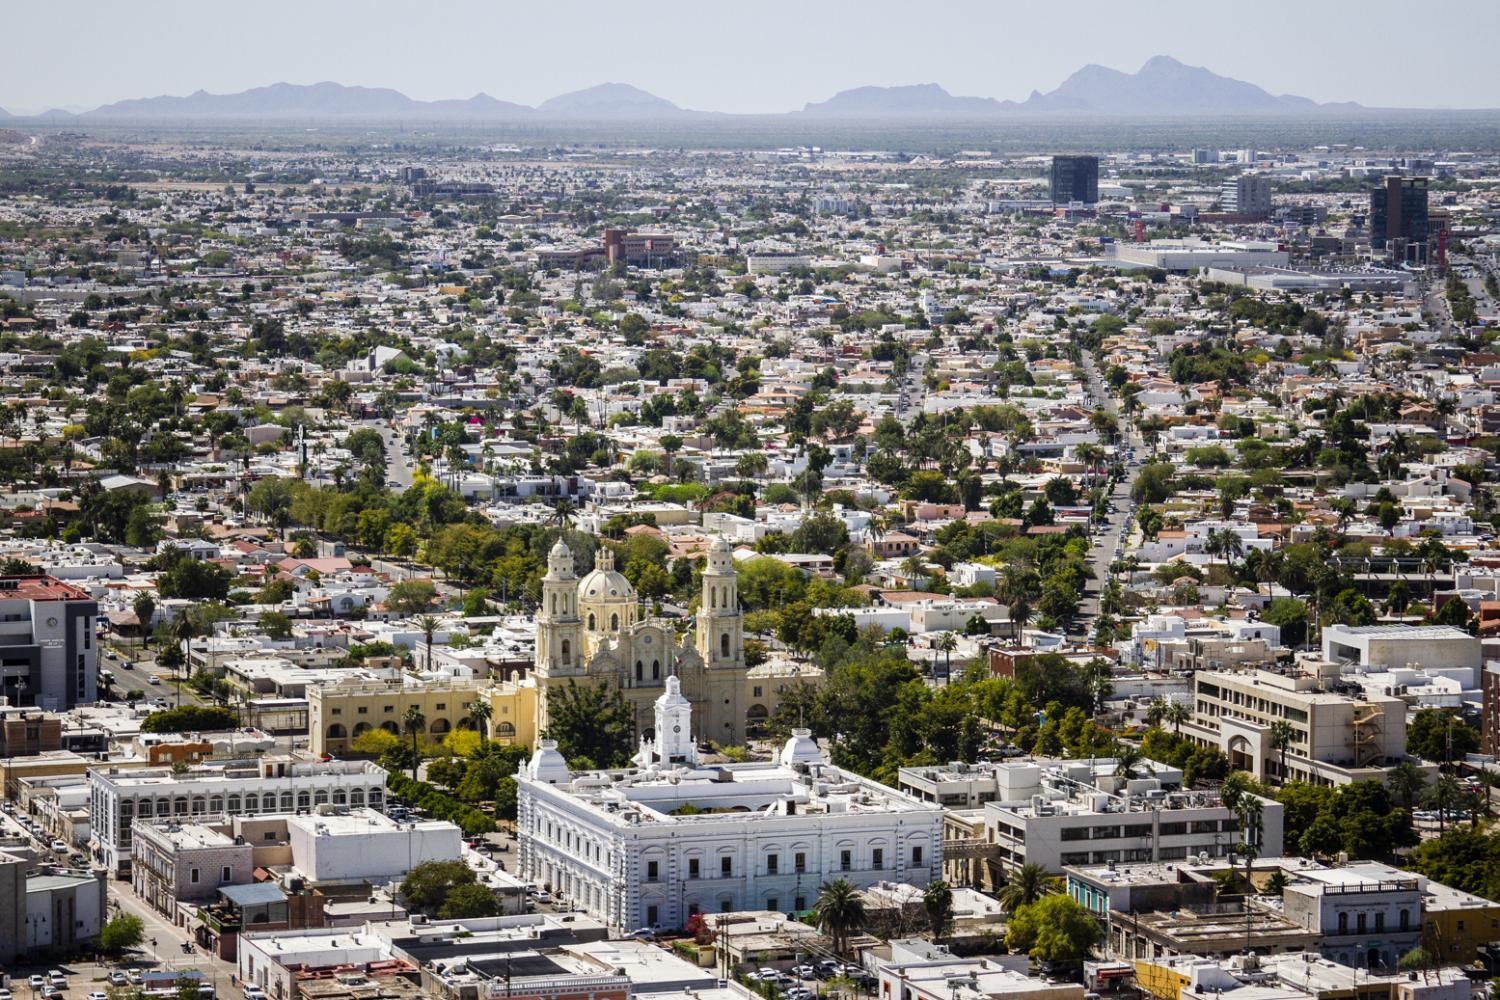 Downtown Hermosillo Redevelopment